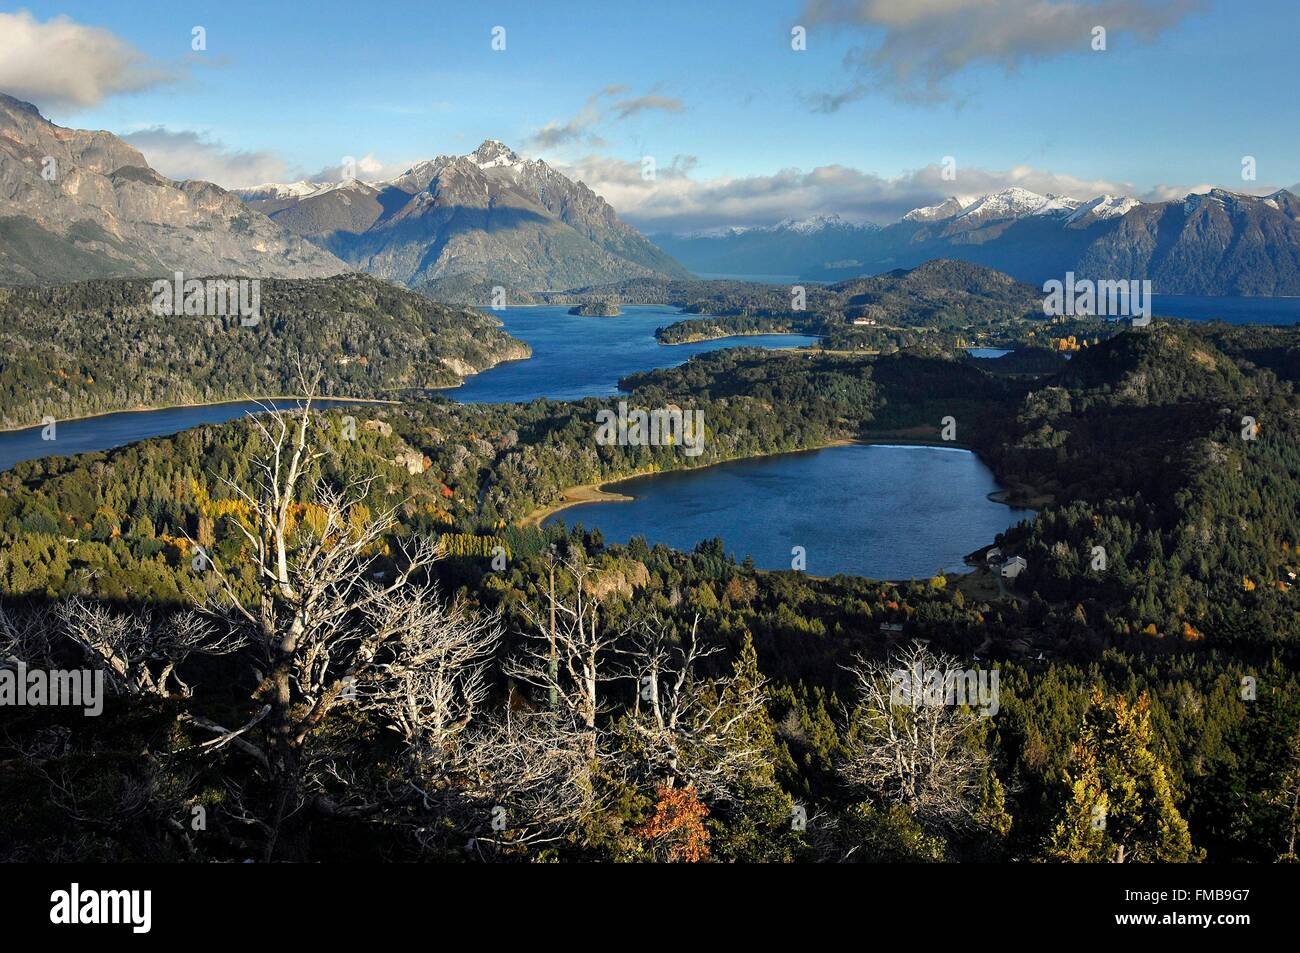 Argentina, Rio Negro province, San Carlos de Bariloche, general view, usually known as Bariloche, it is a city situated - Stock Image